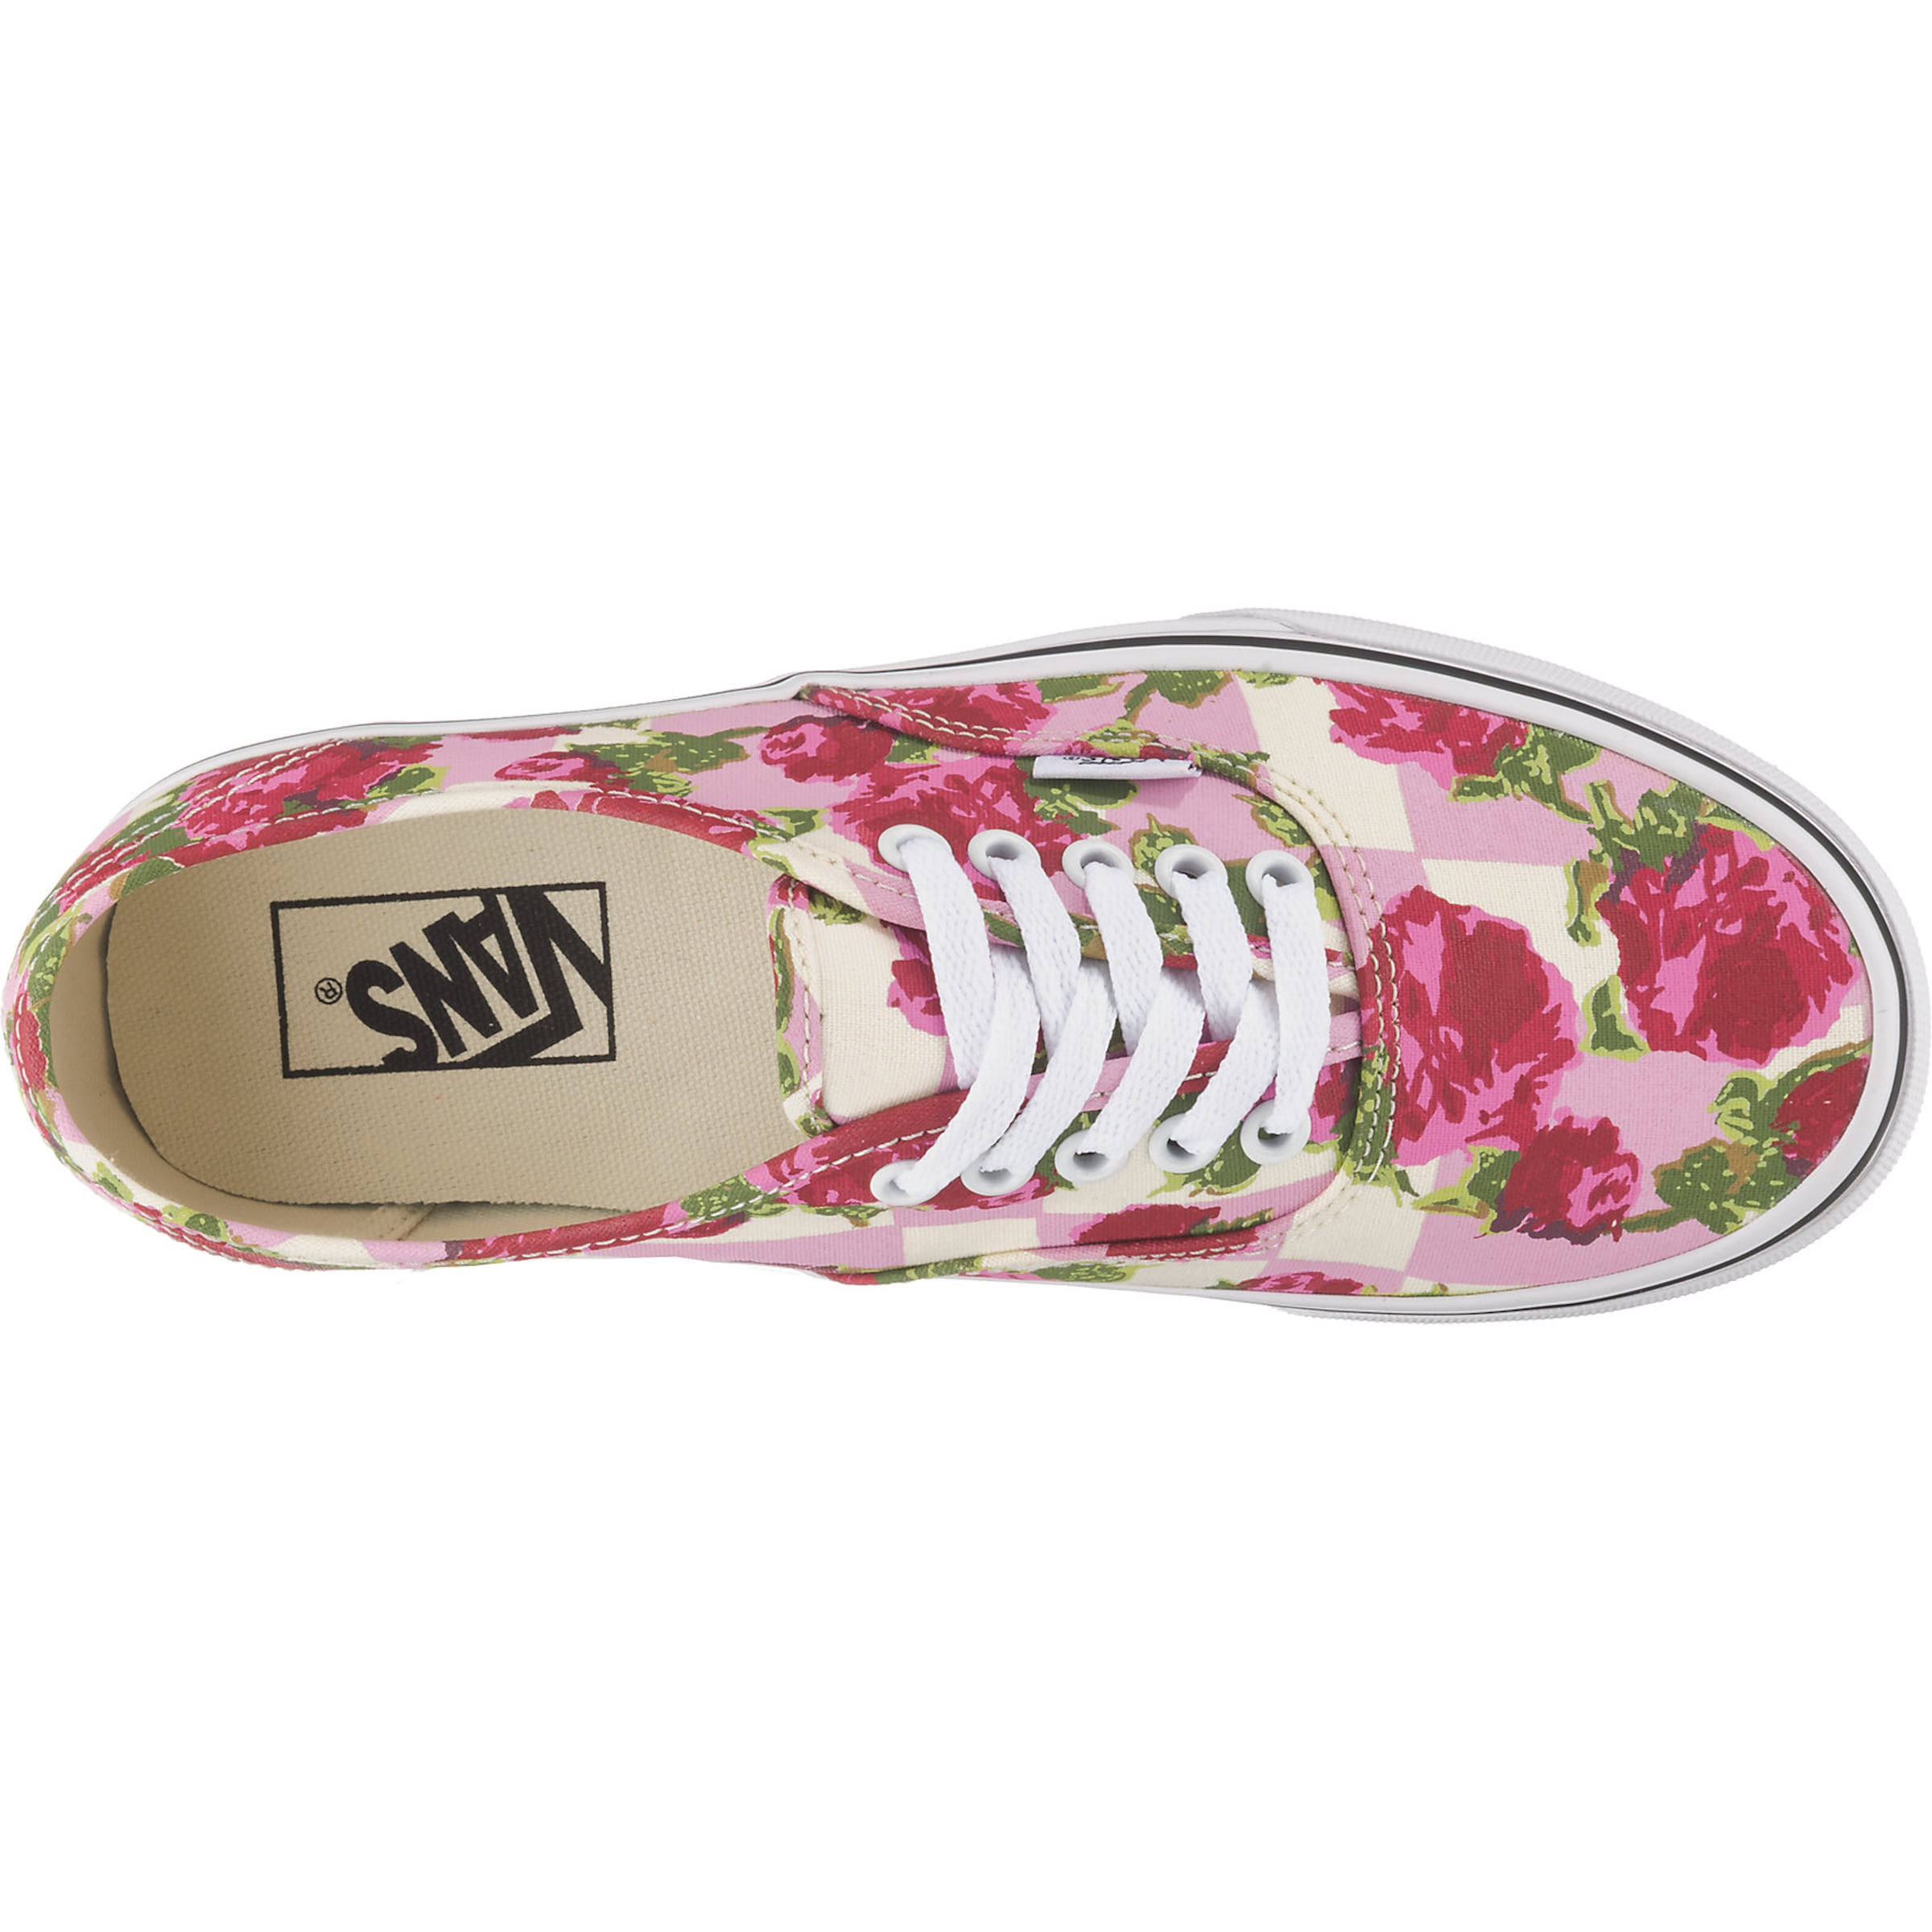 In Sneaker 'authentic' 'authentic' In Vans Vans Sneaker MischfarbenAltrosa nNvmwO80